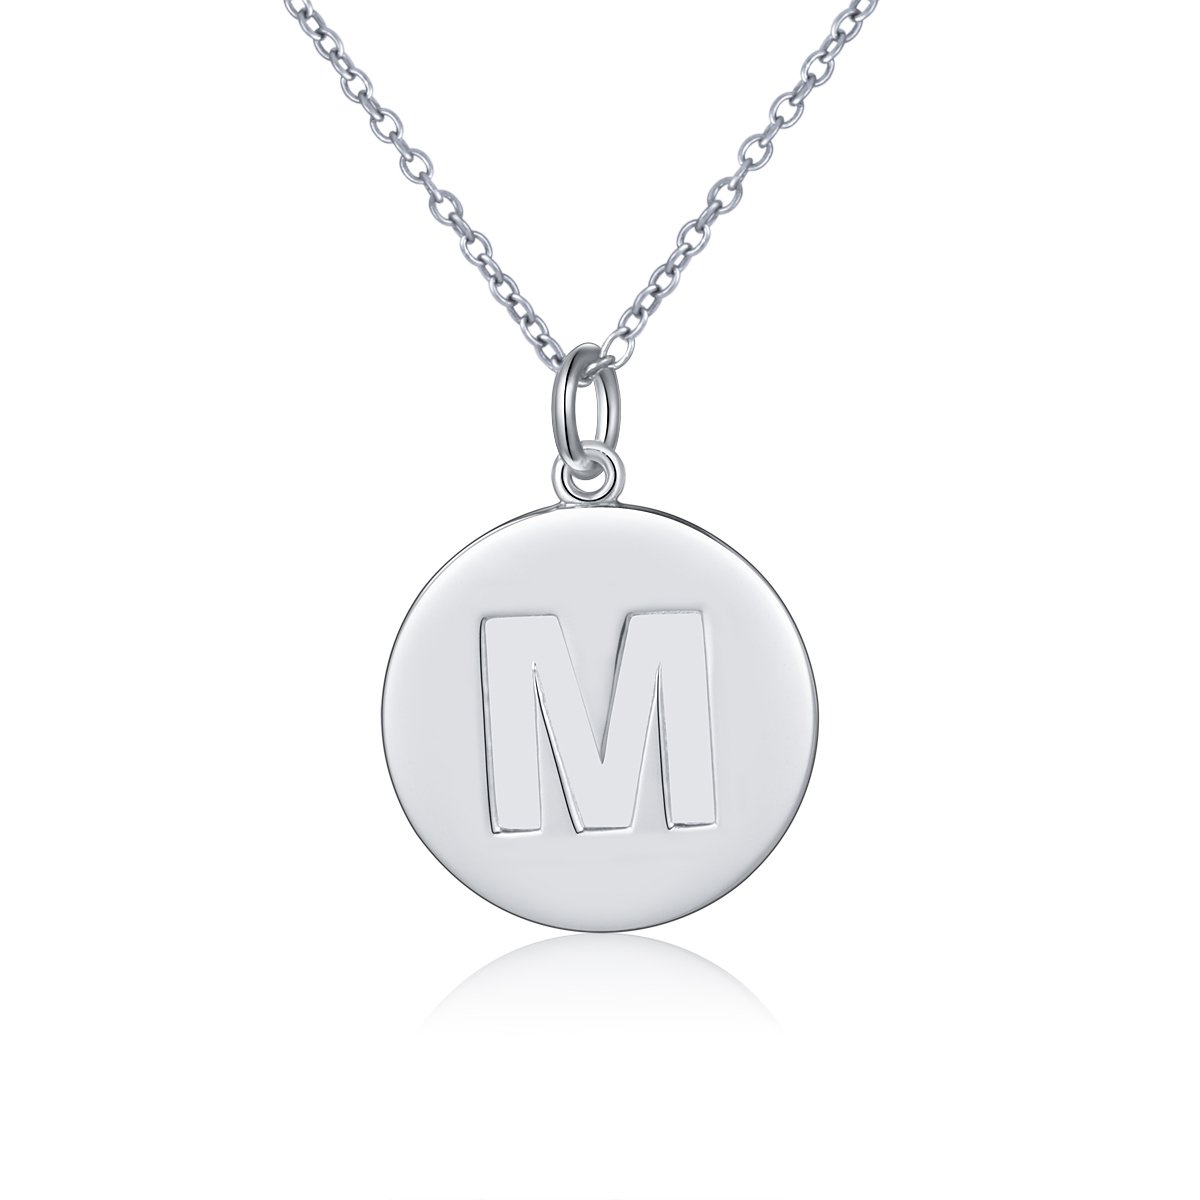 DAOCHONG S925 Sterling Silver Initial Disc Necklace Alphabet Letter Pendant Necklace M